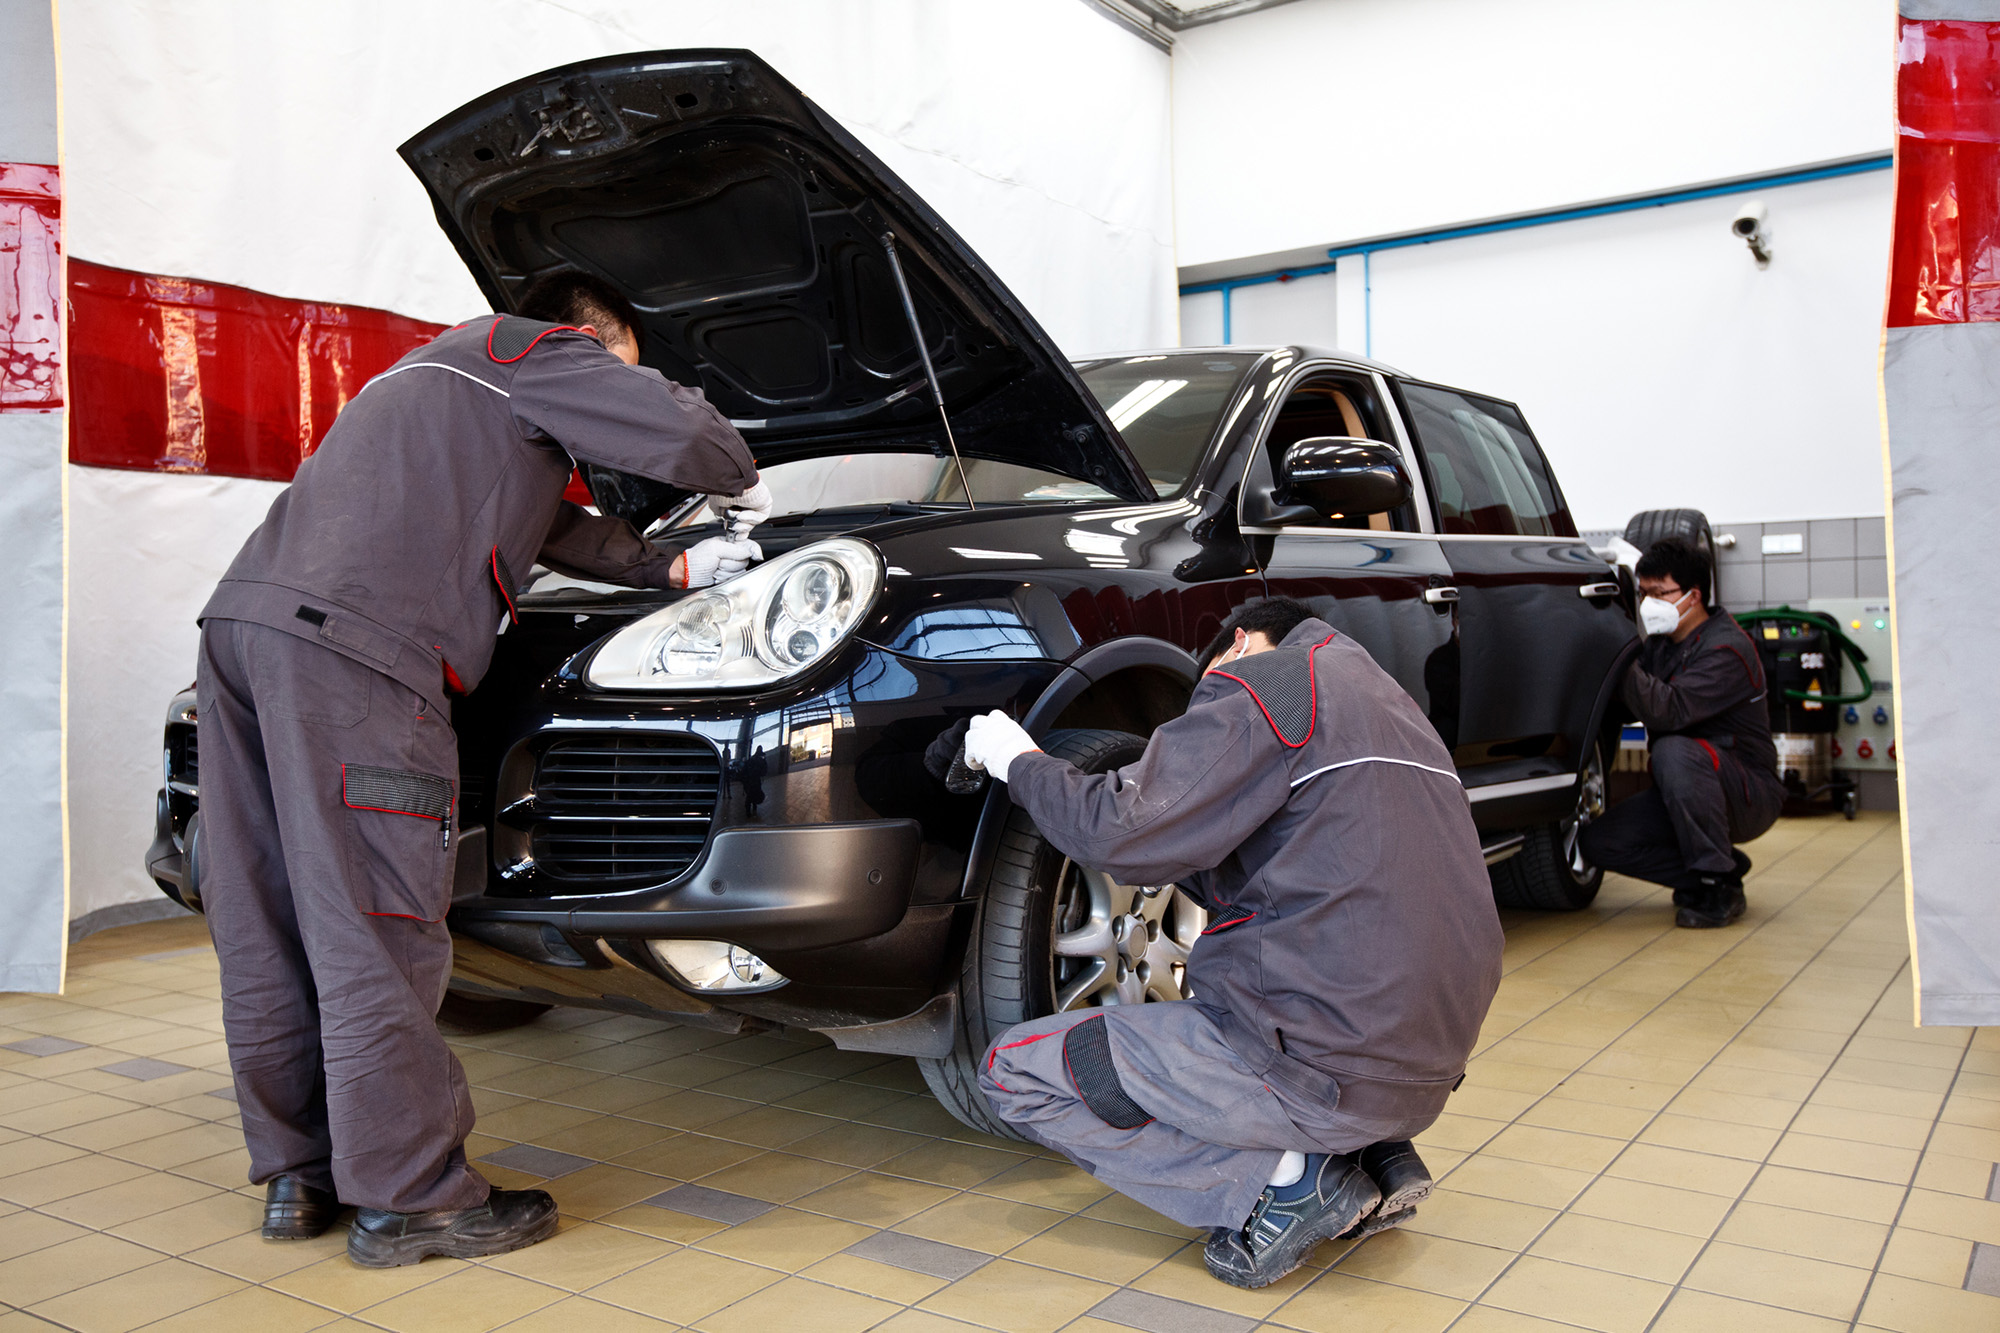 3 men working on Black Porsche jeep